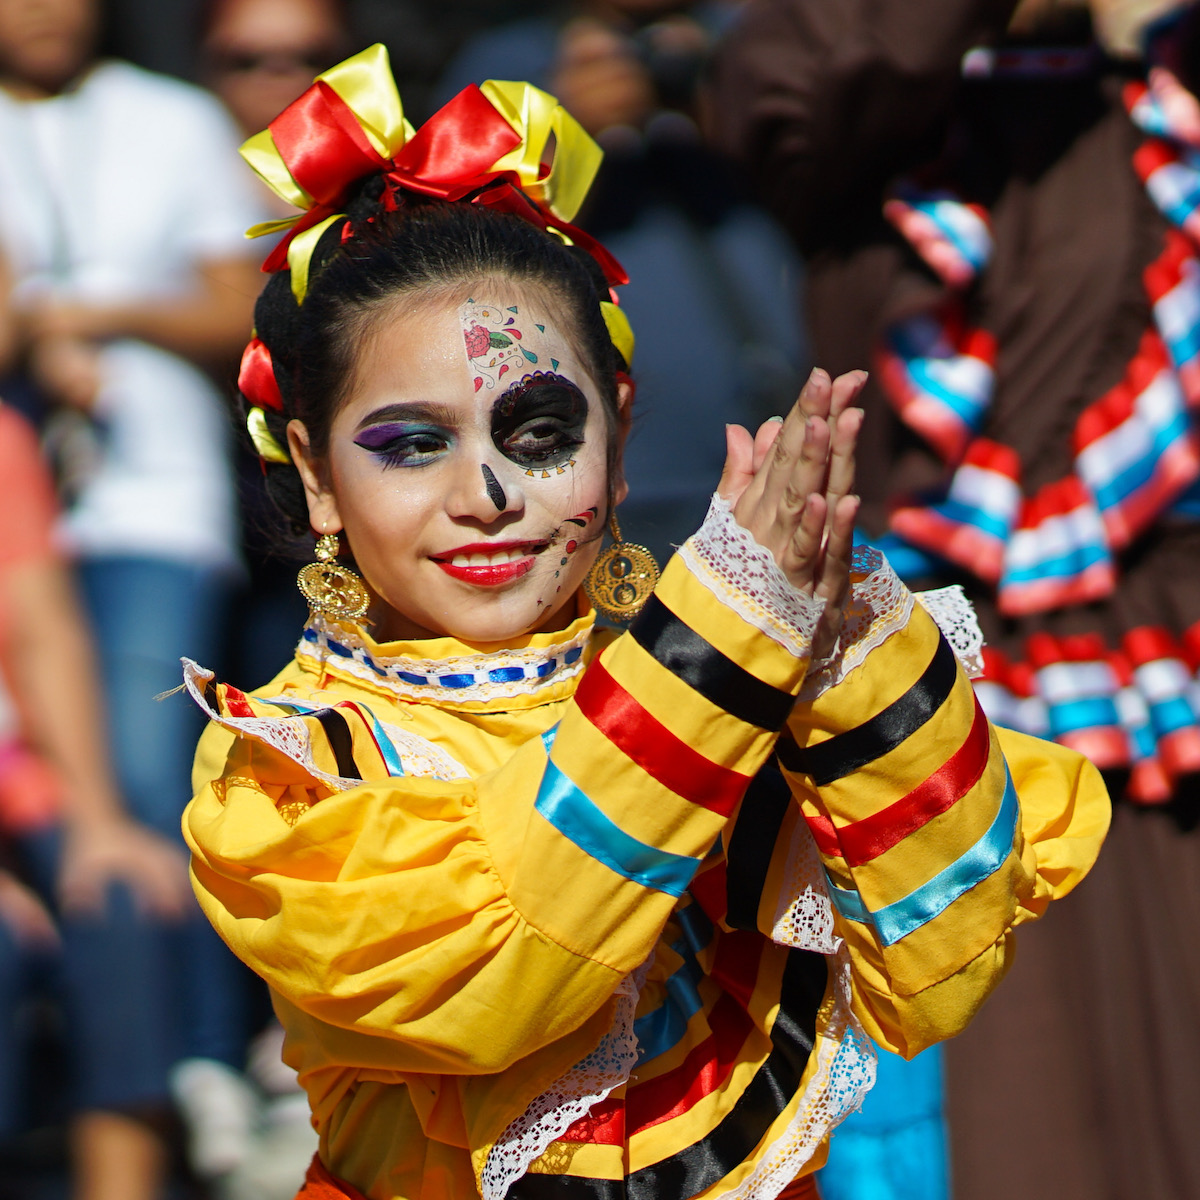 girl dancing some mexican folkdance